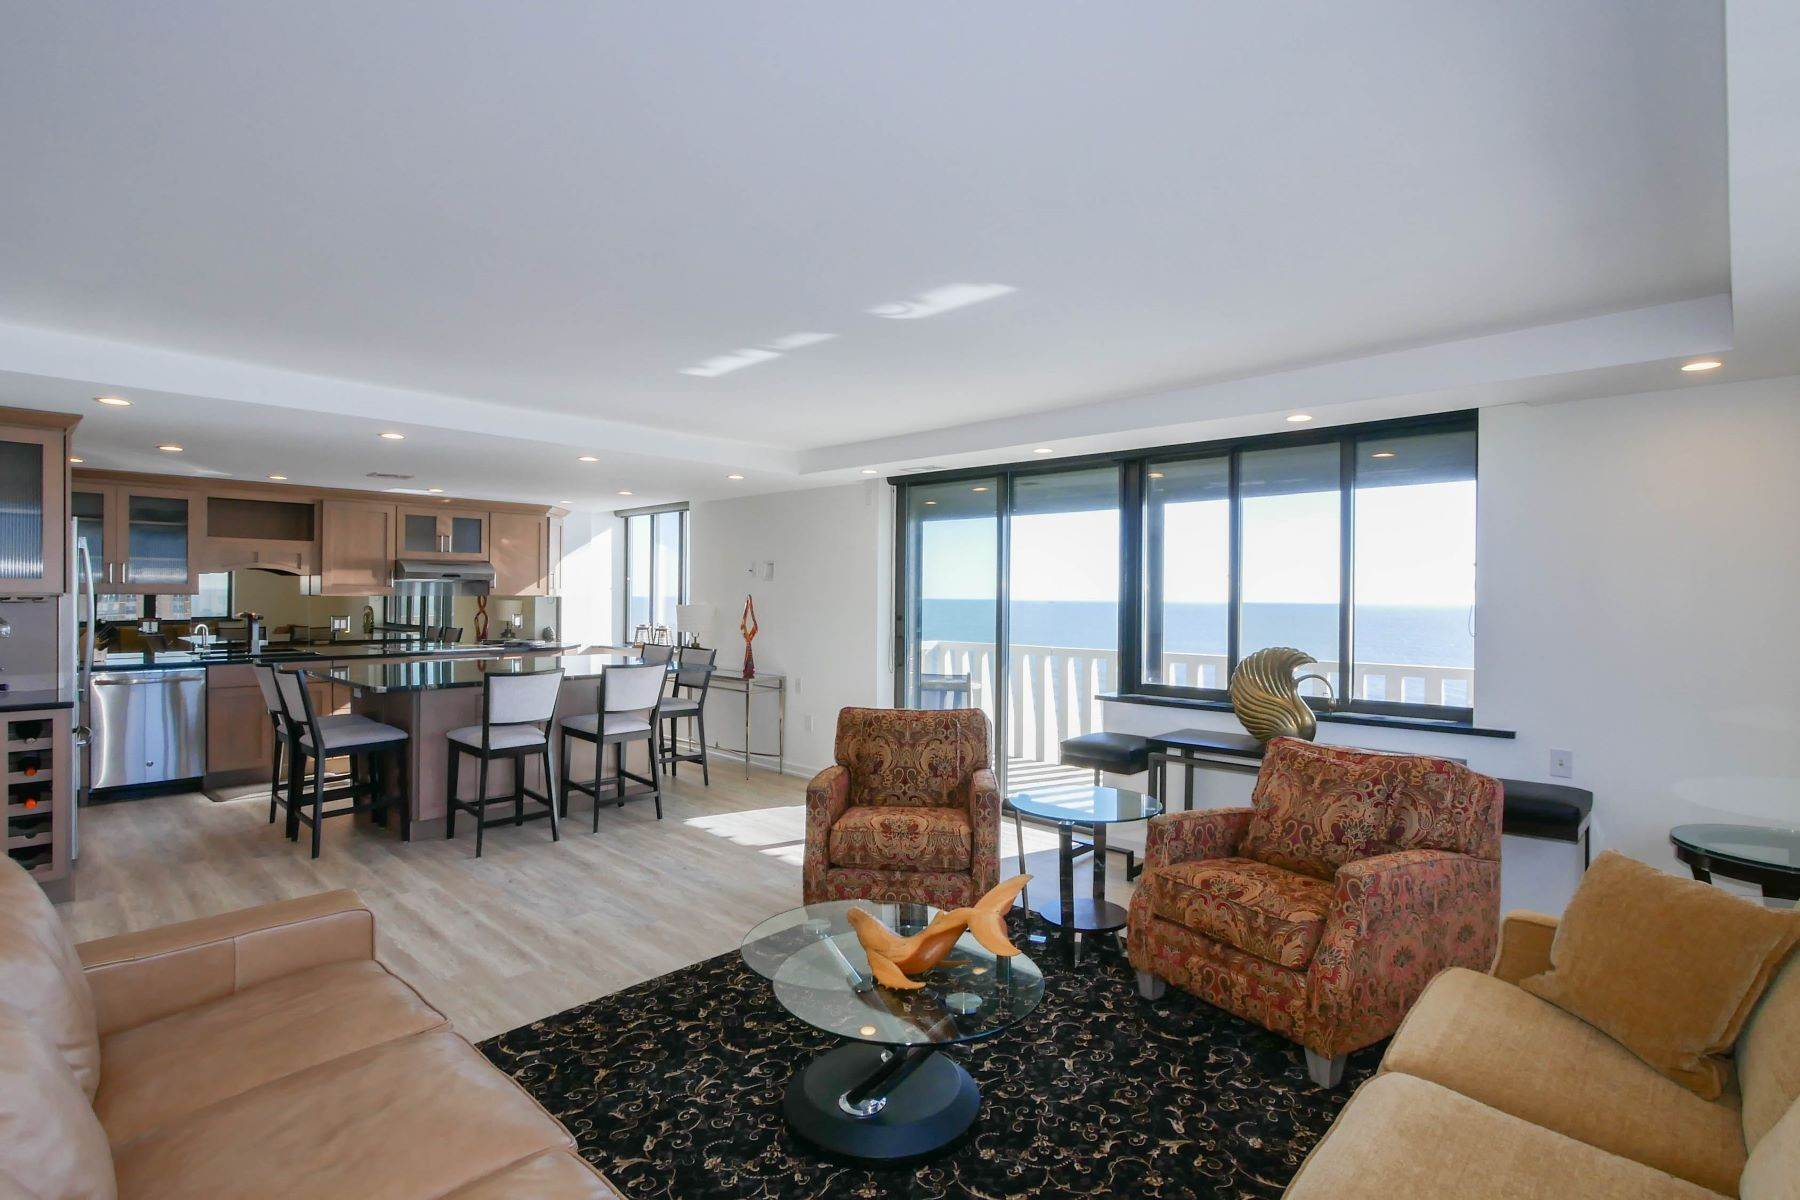 3. Condominiums for Sale at 100 S Berkely #21A 100 S Berkley Ave #21A Atlantic City, New Jersey 08401 United States